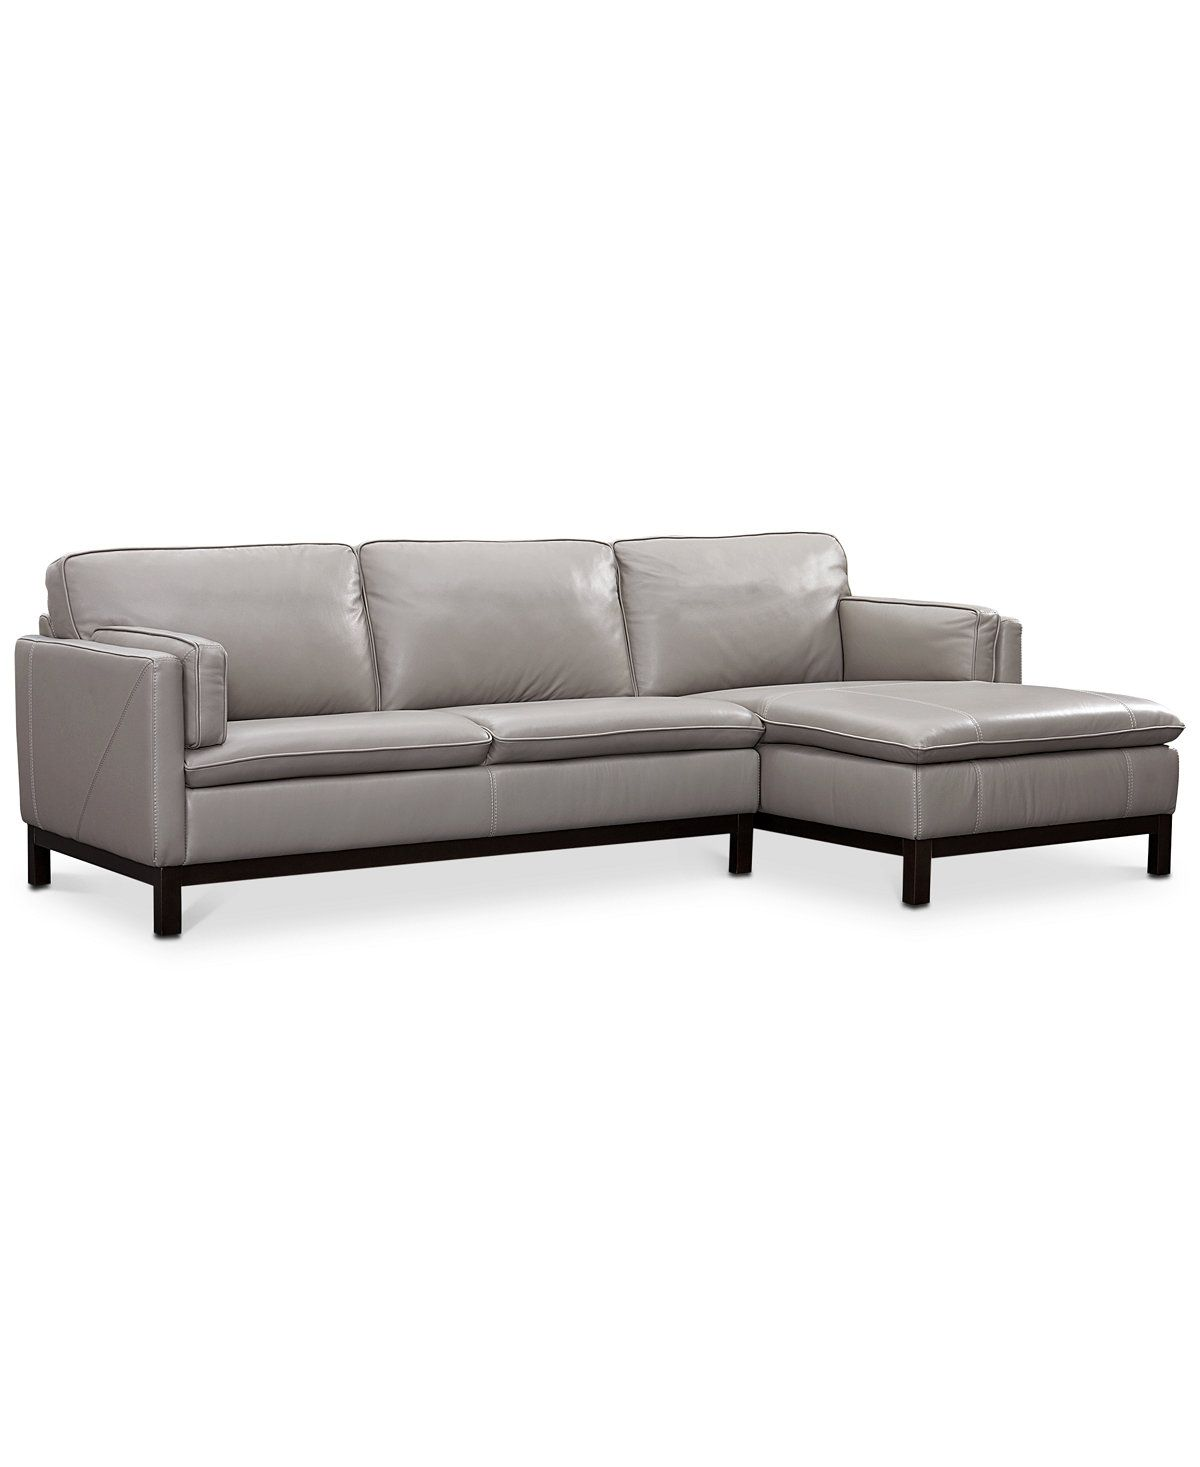 Ventroso 2 Pc Leather Chaise Sectional Sofa Created for Macy s